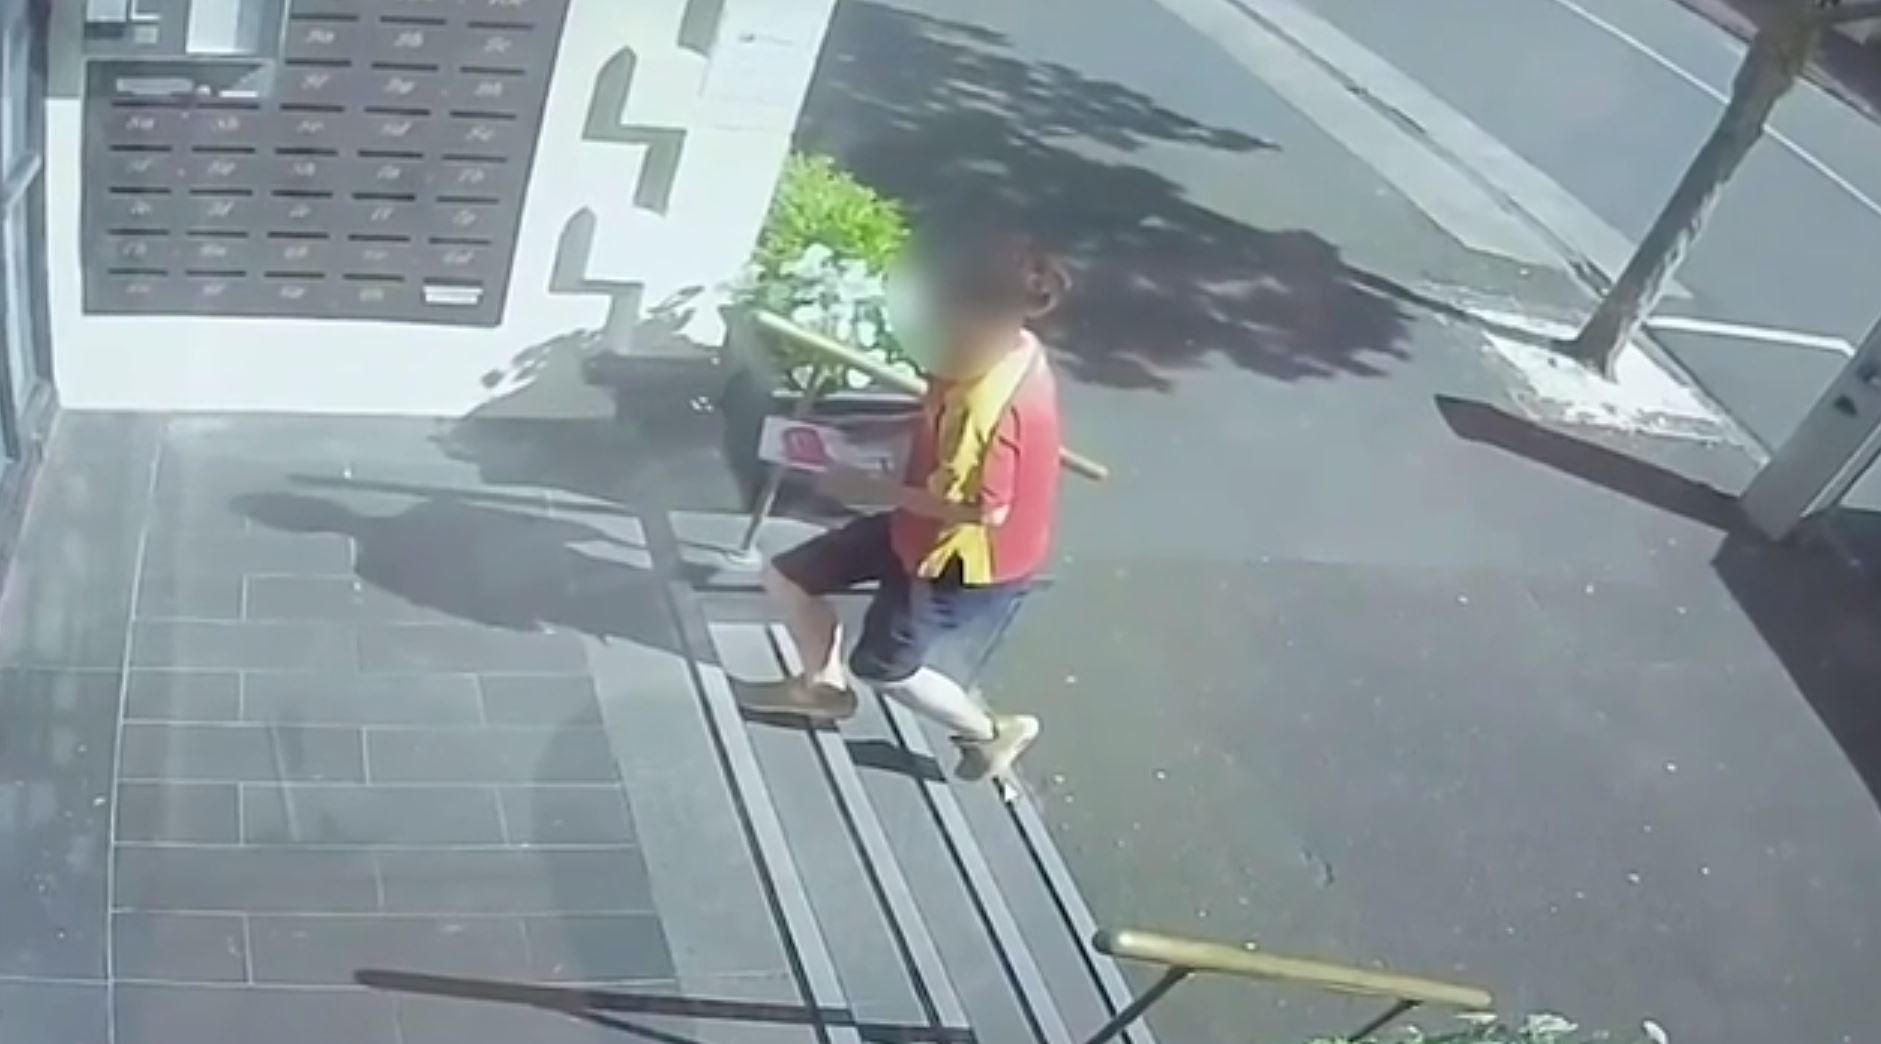 This courier driver, captured on CCTV, made no attempt at delivering the parcel, only a card to...